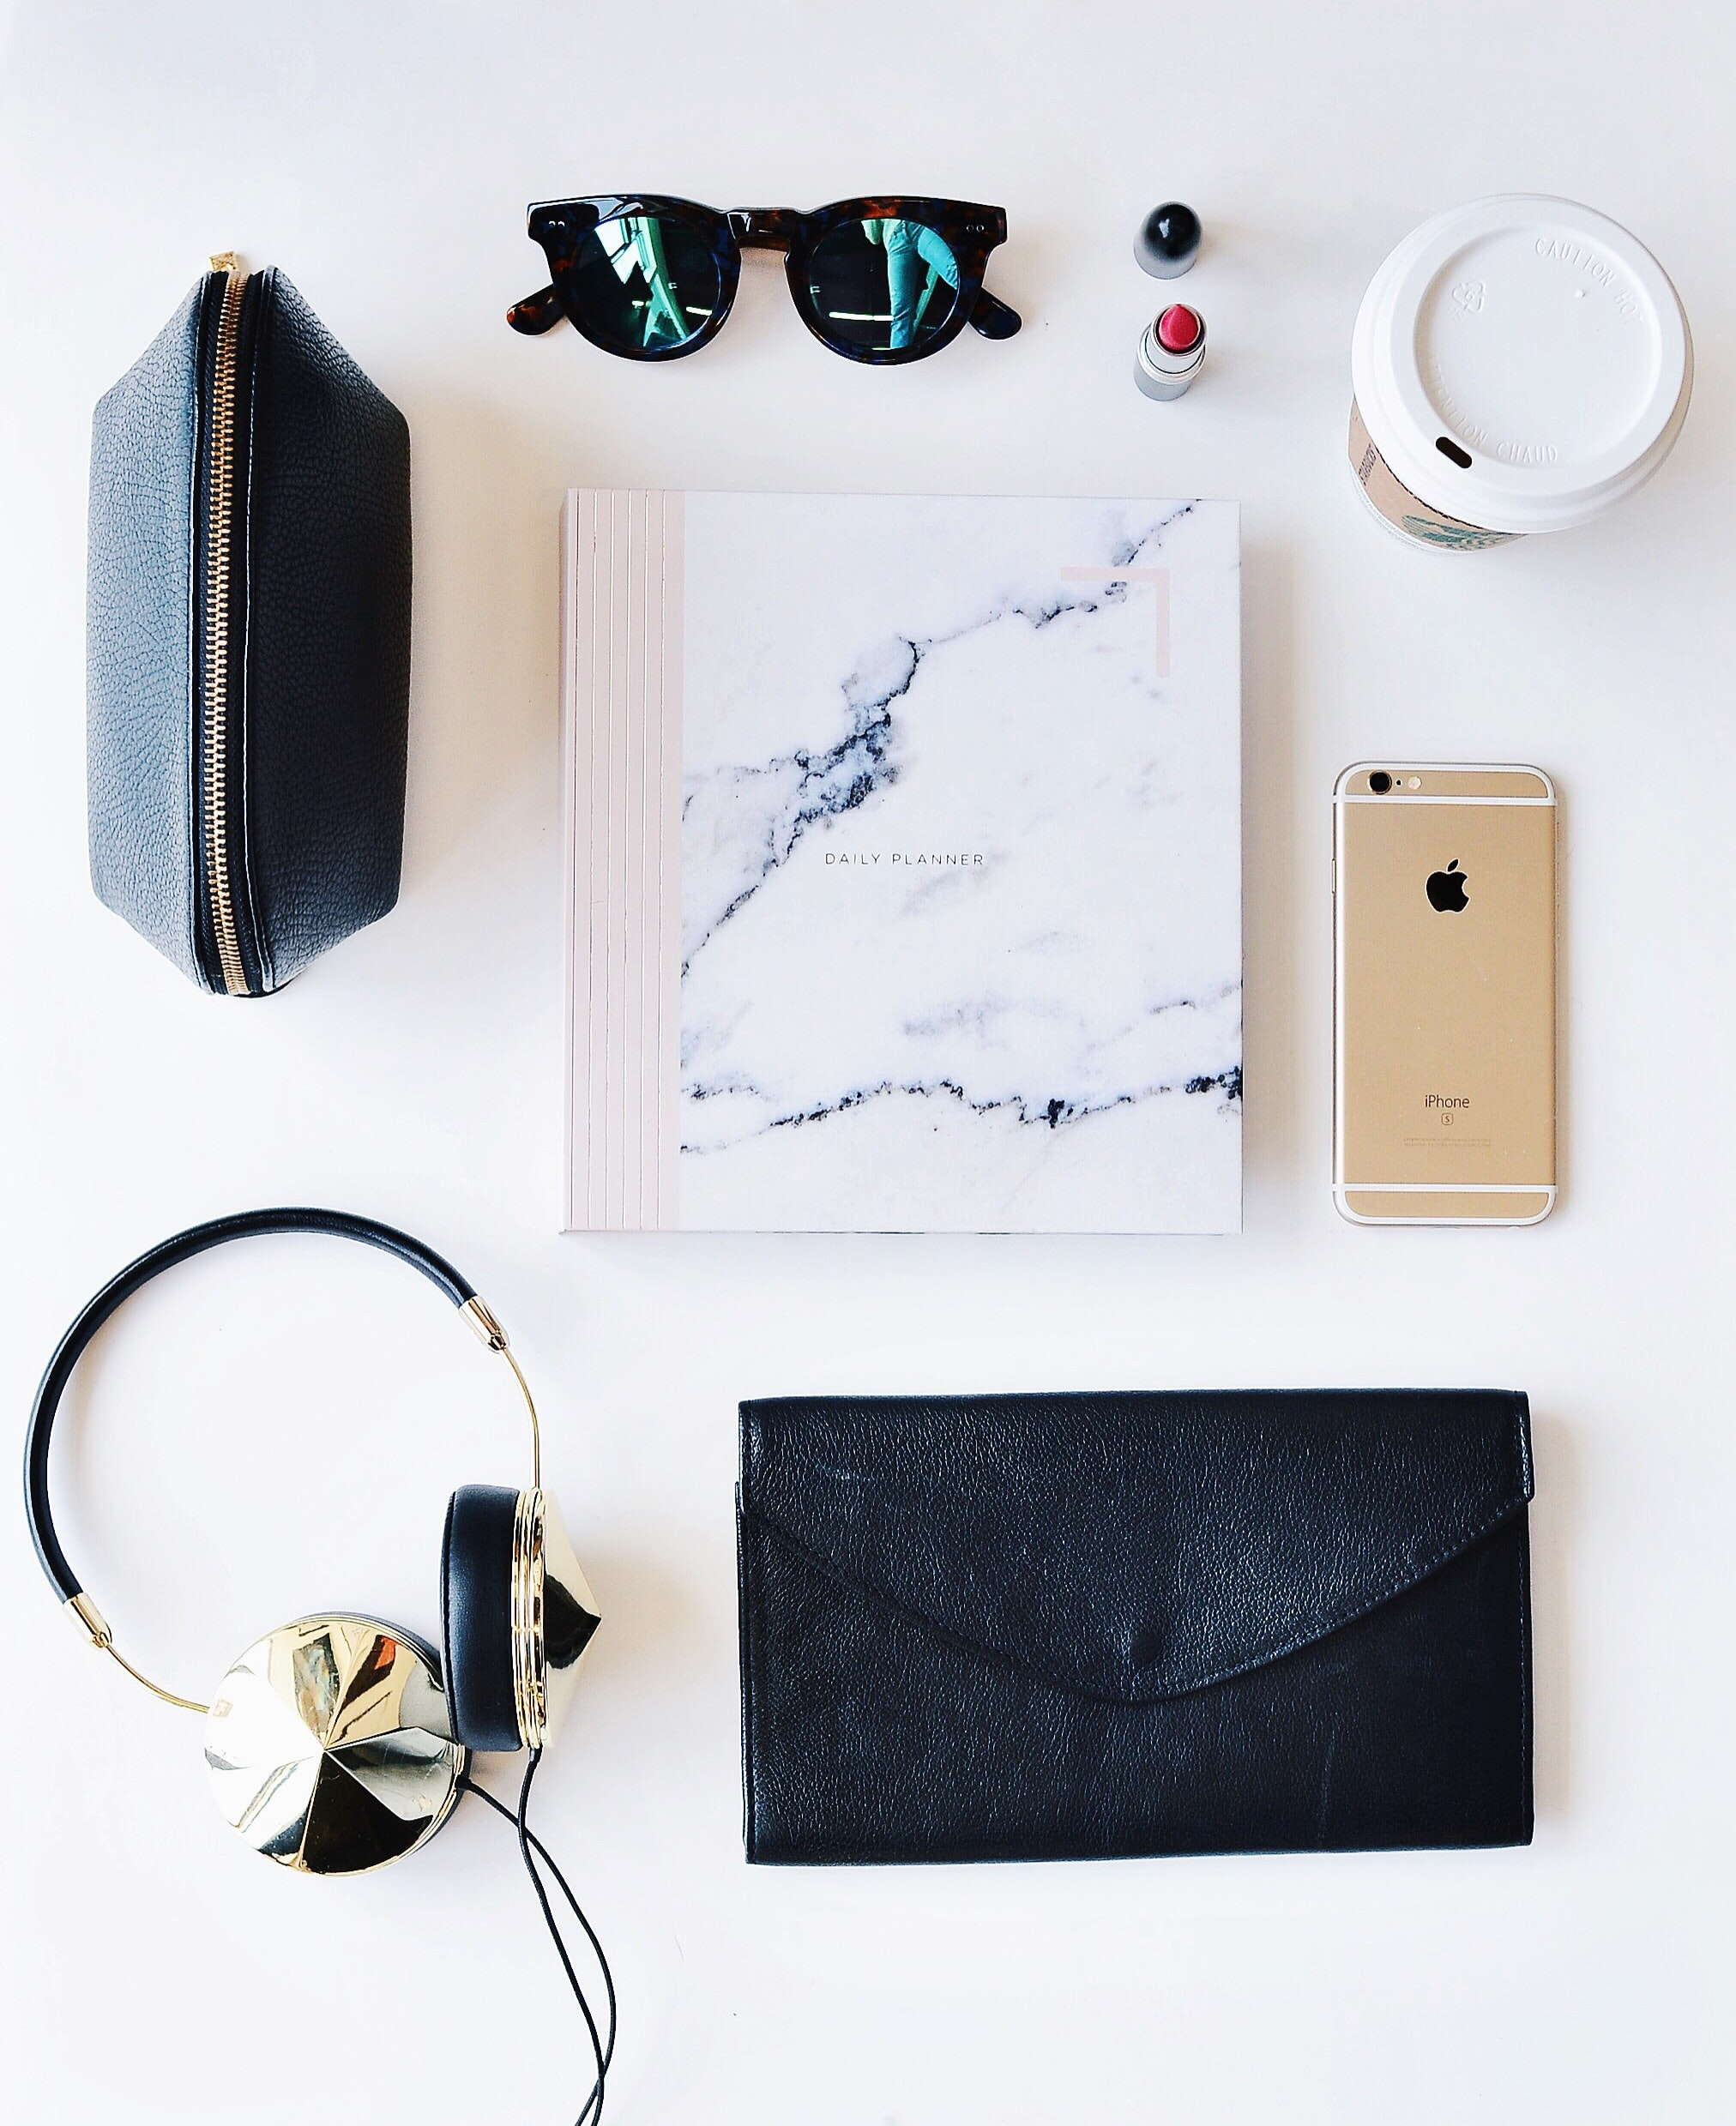 A flatlay image of paper, a smartphone, cup of coffee, glasses and various other items.